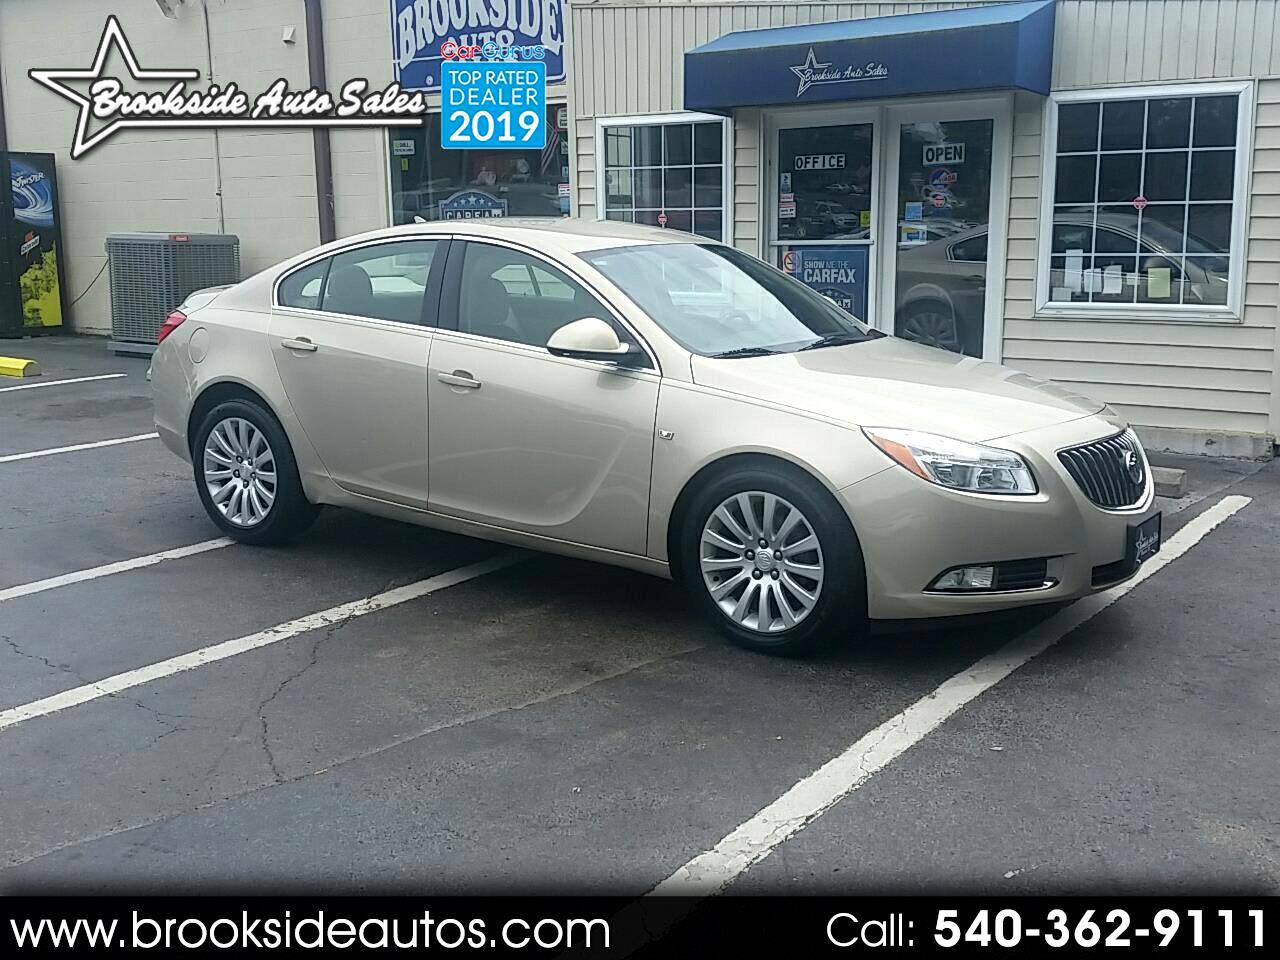 2011 Buick Regal 4DR Sedan CXL